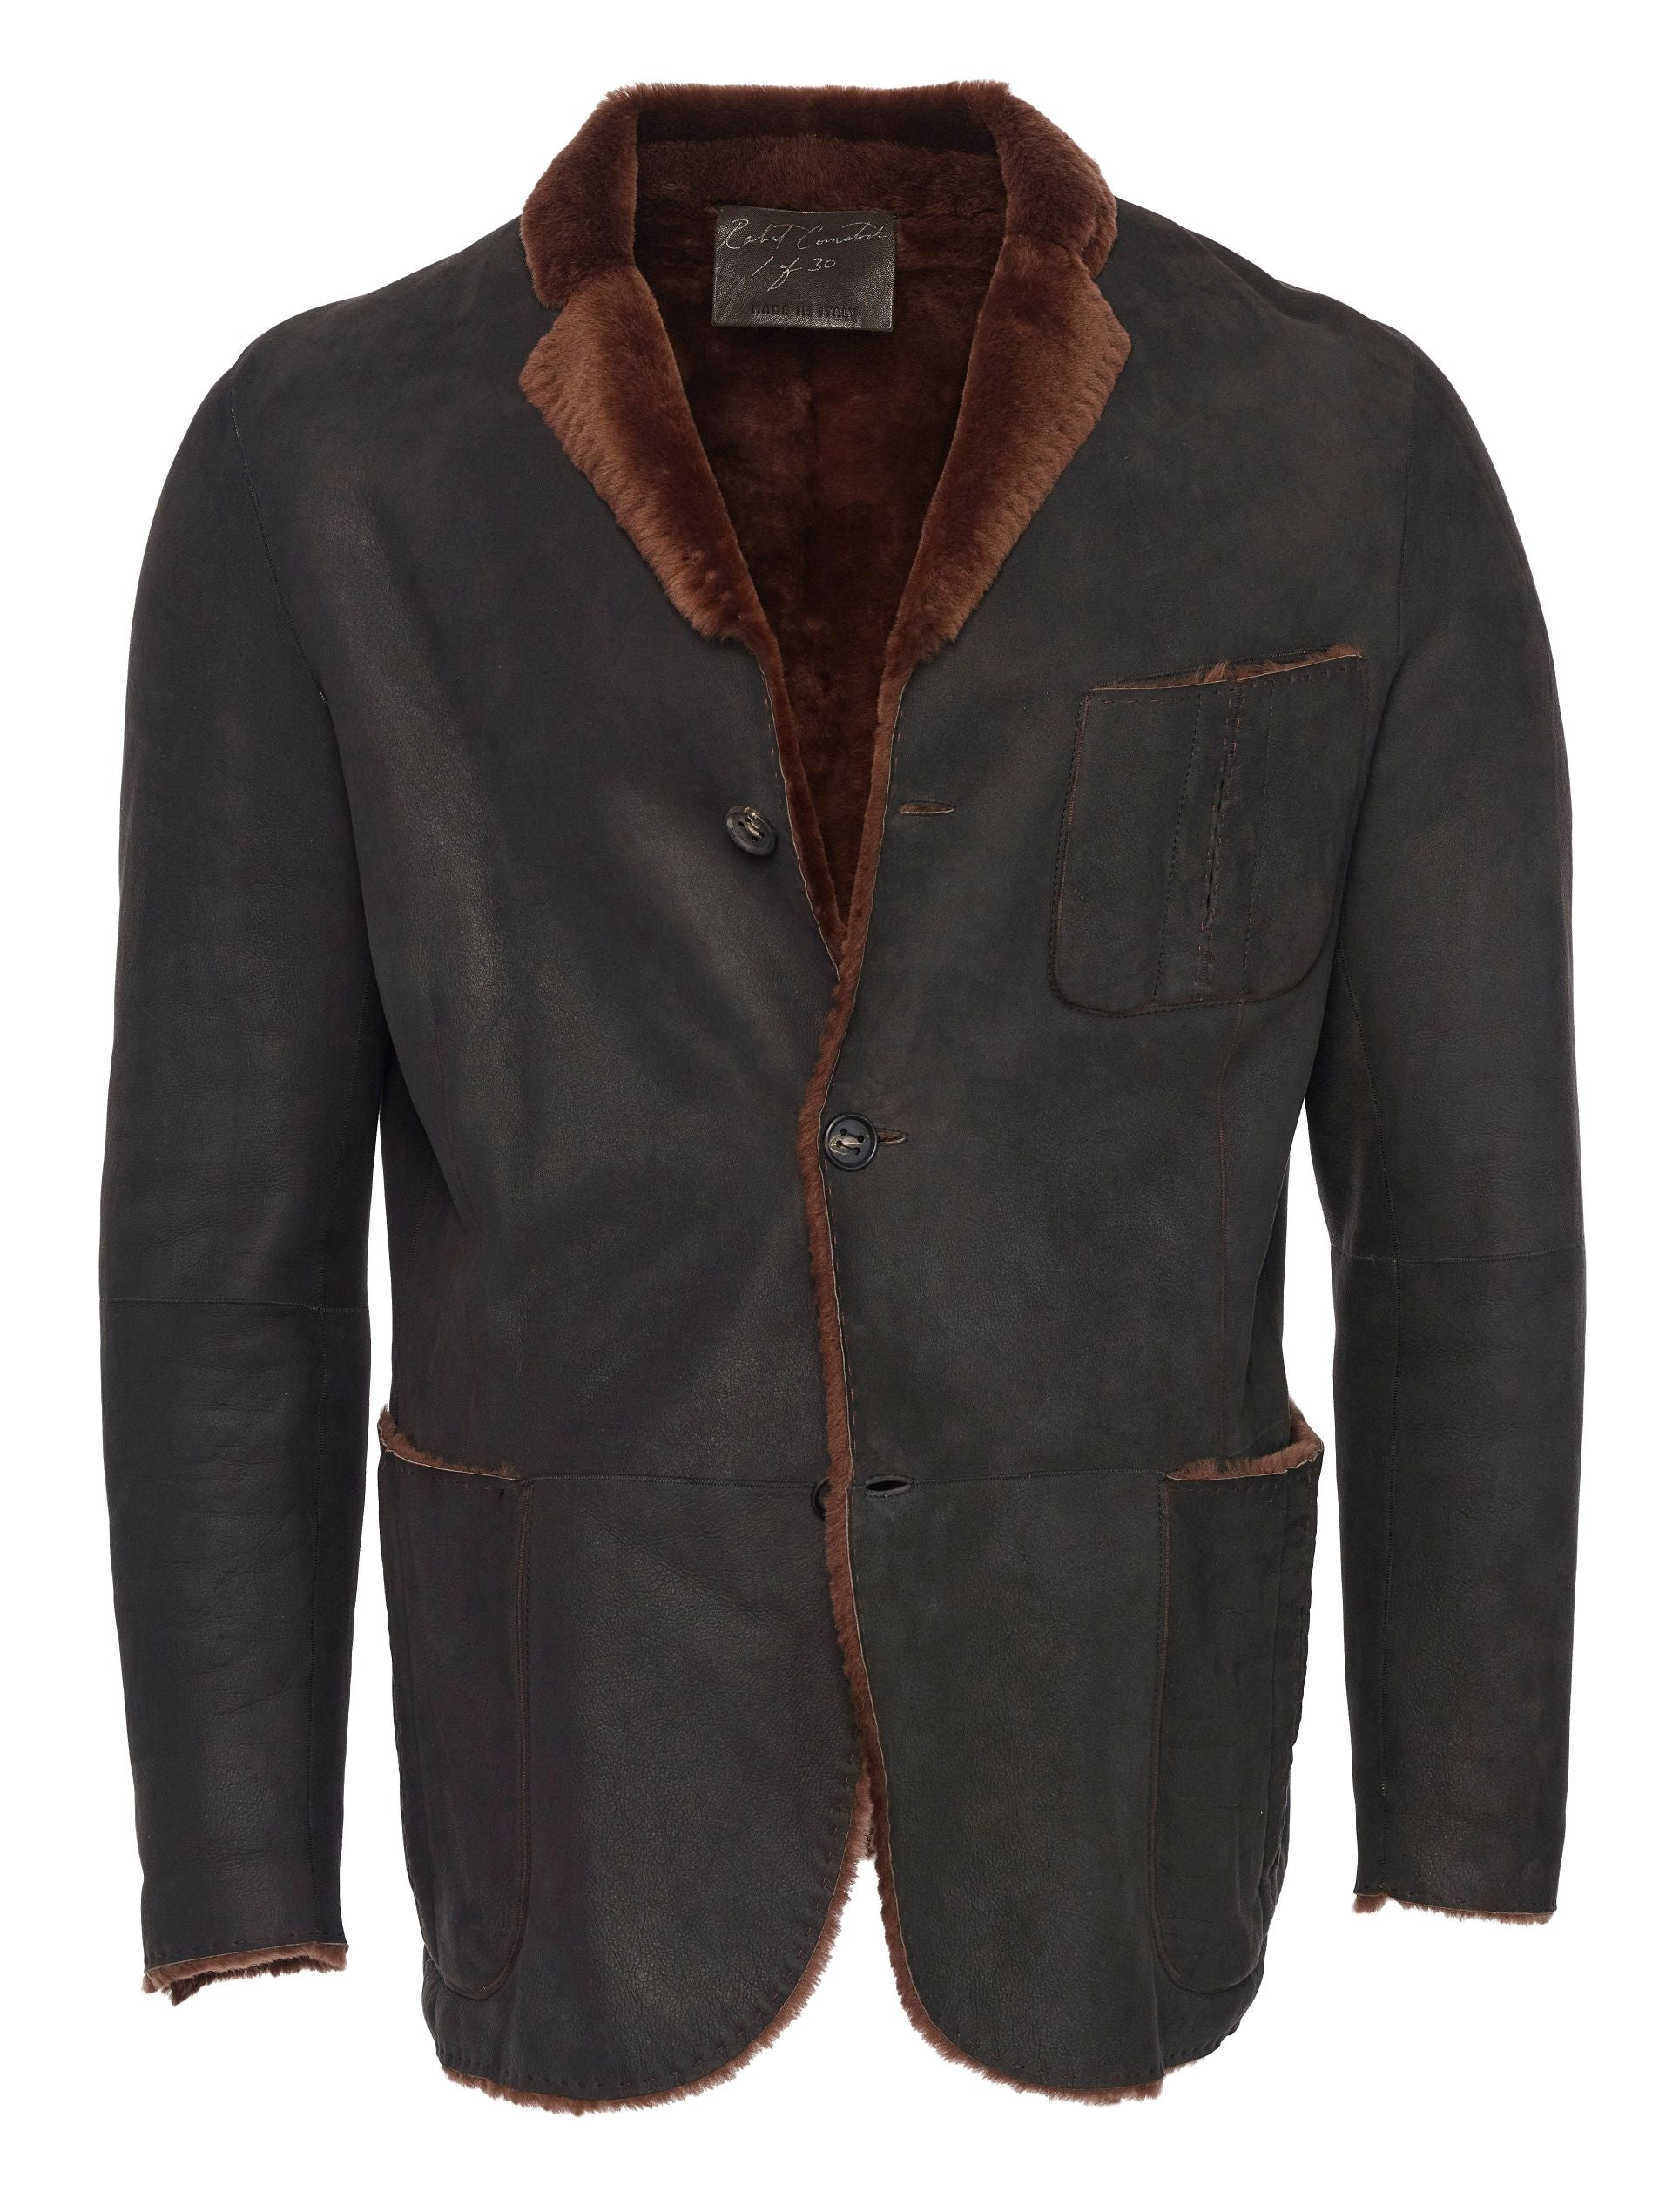 Spanish Lancon featherweight shearling blazer with raw cut seams - double back vents - breast pocket and horn buttons